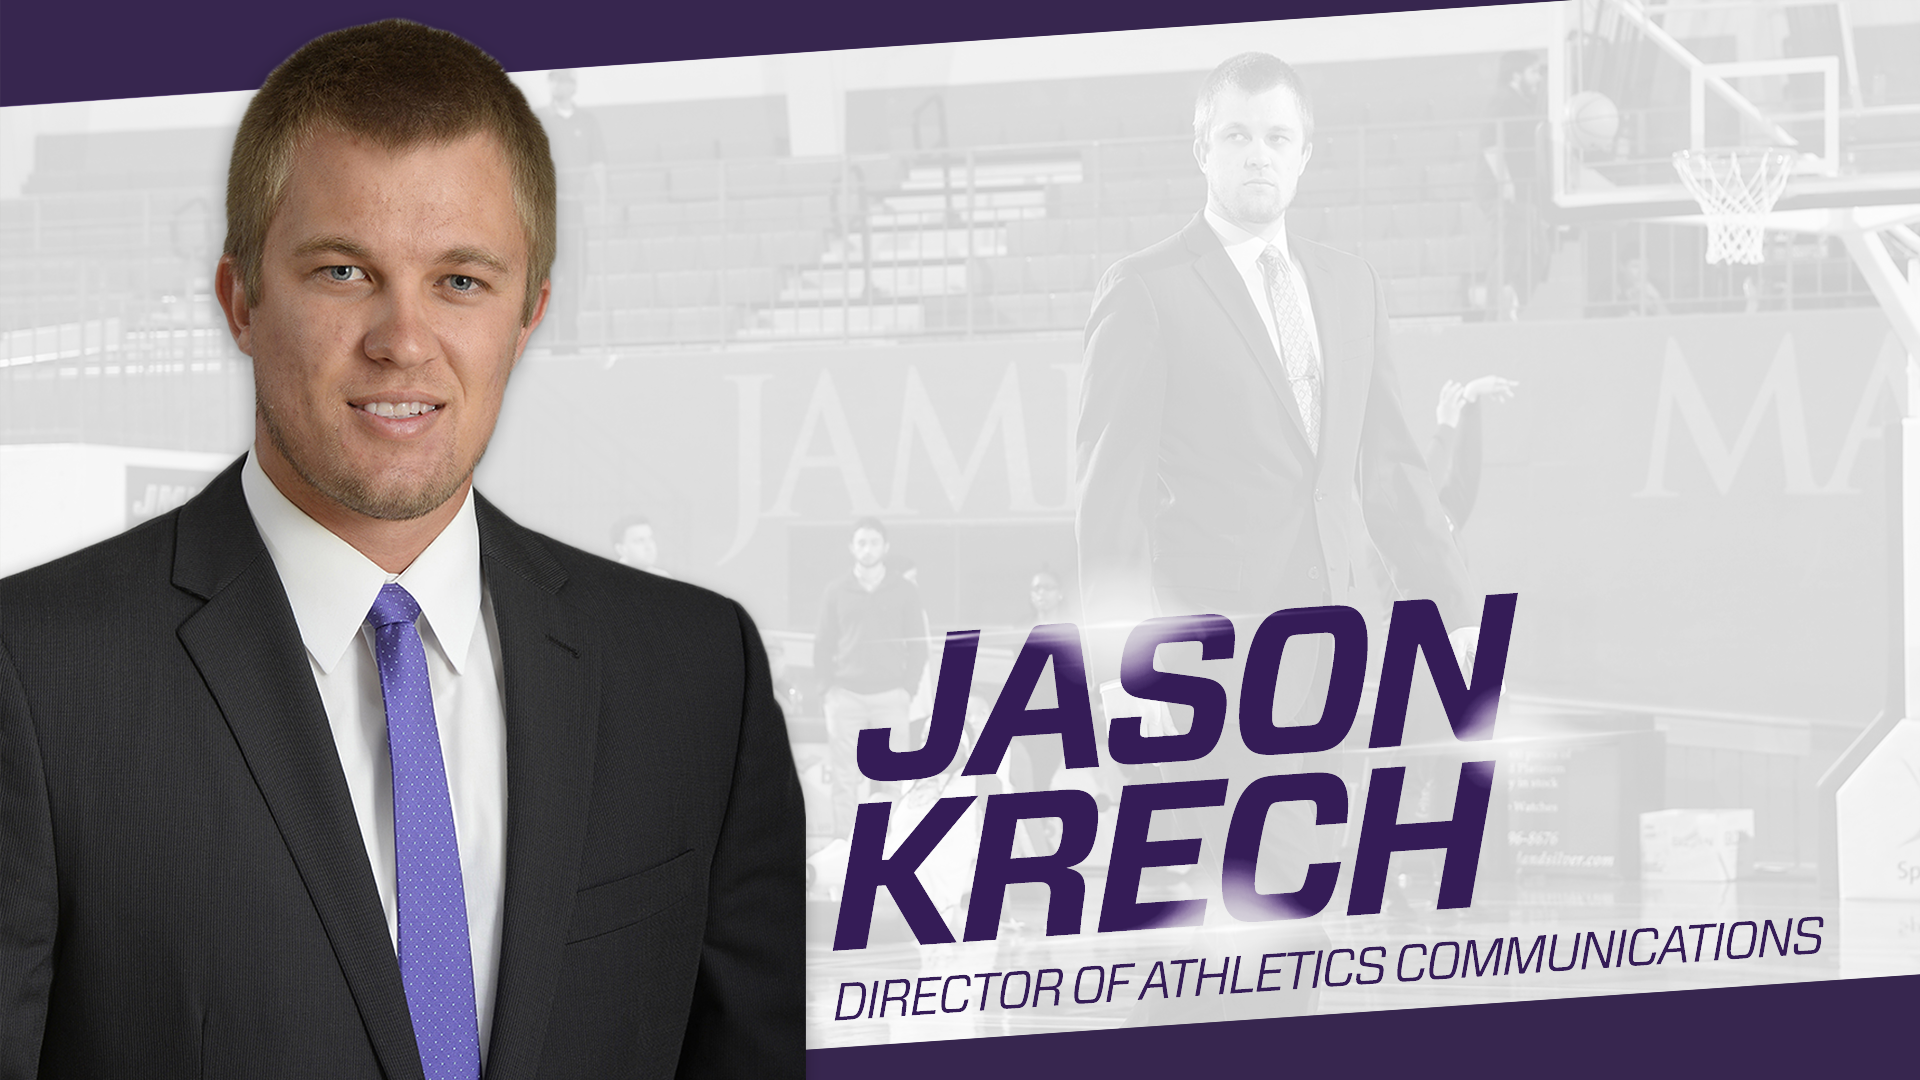 Administration: Krech Promoted to Director of Athletics Communications